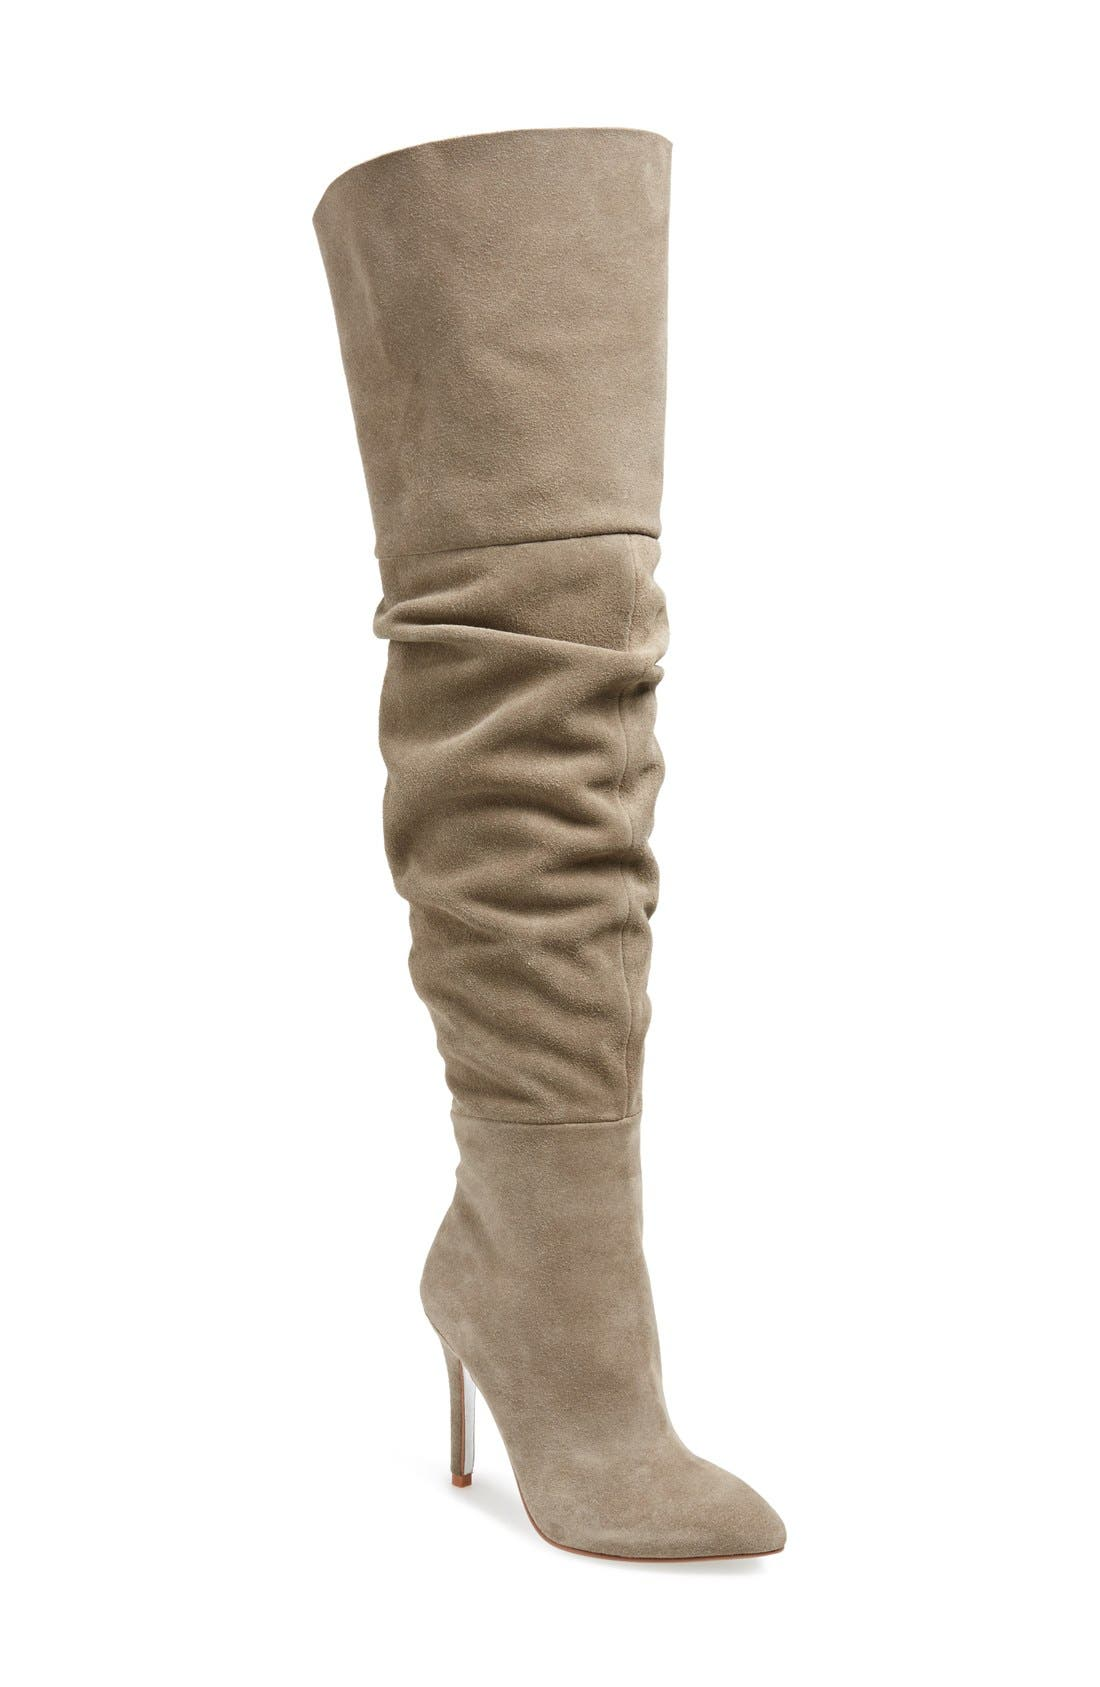 KRISTIN CAVALLARI 'Calissa' Over the Knee Slouch Boot, Main, color, 031